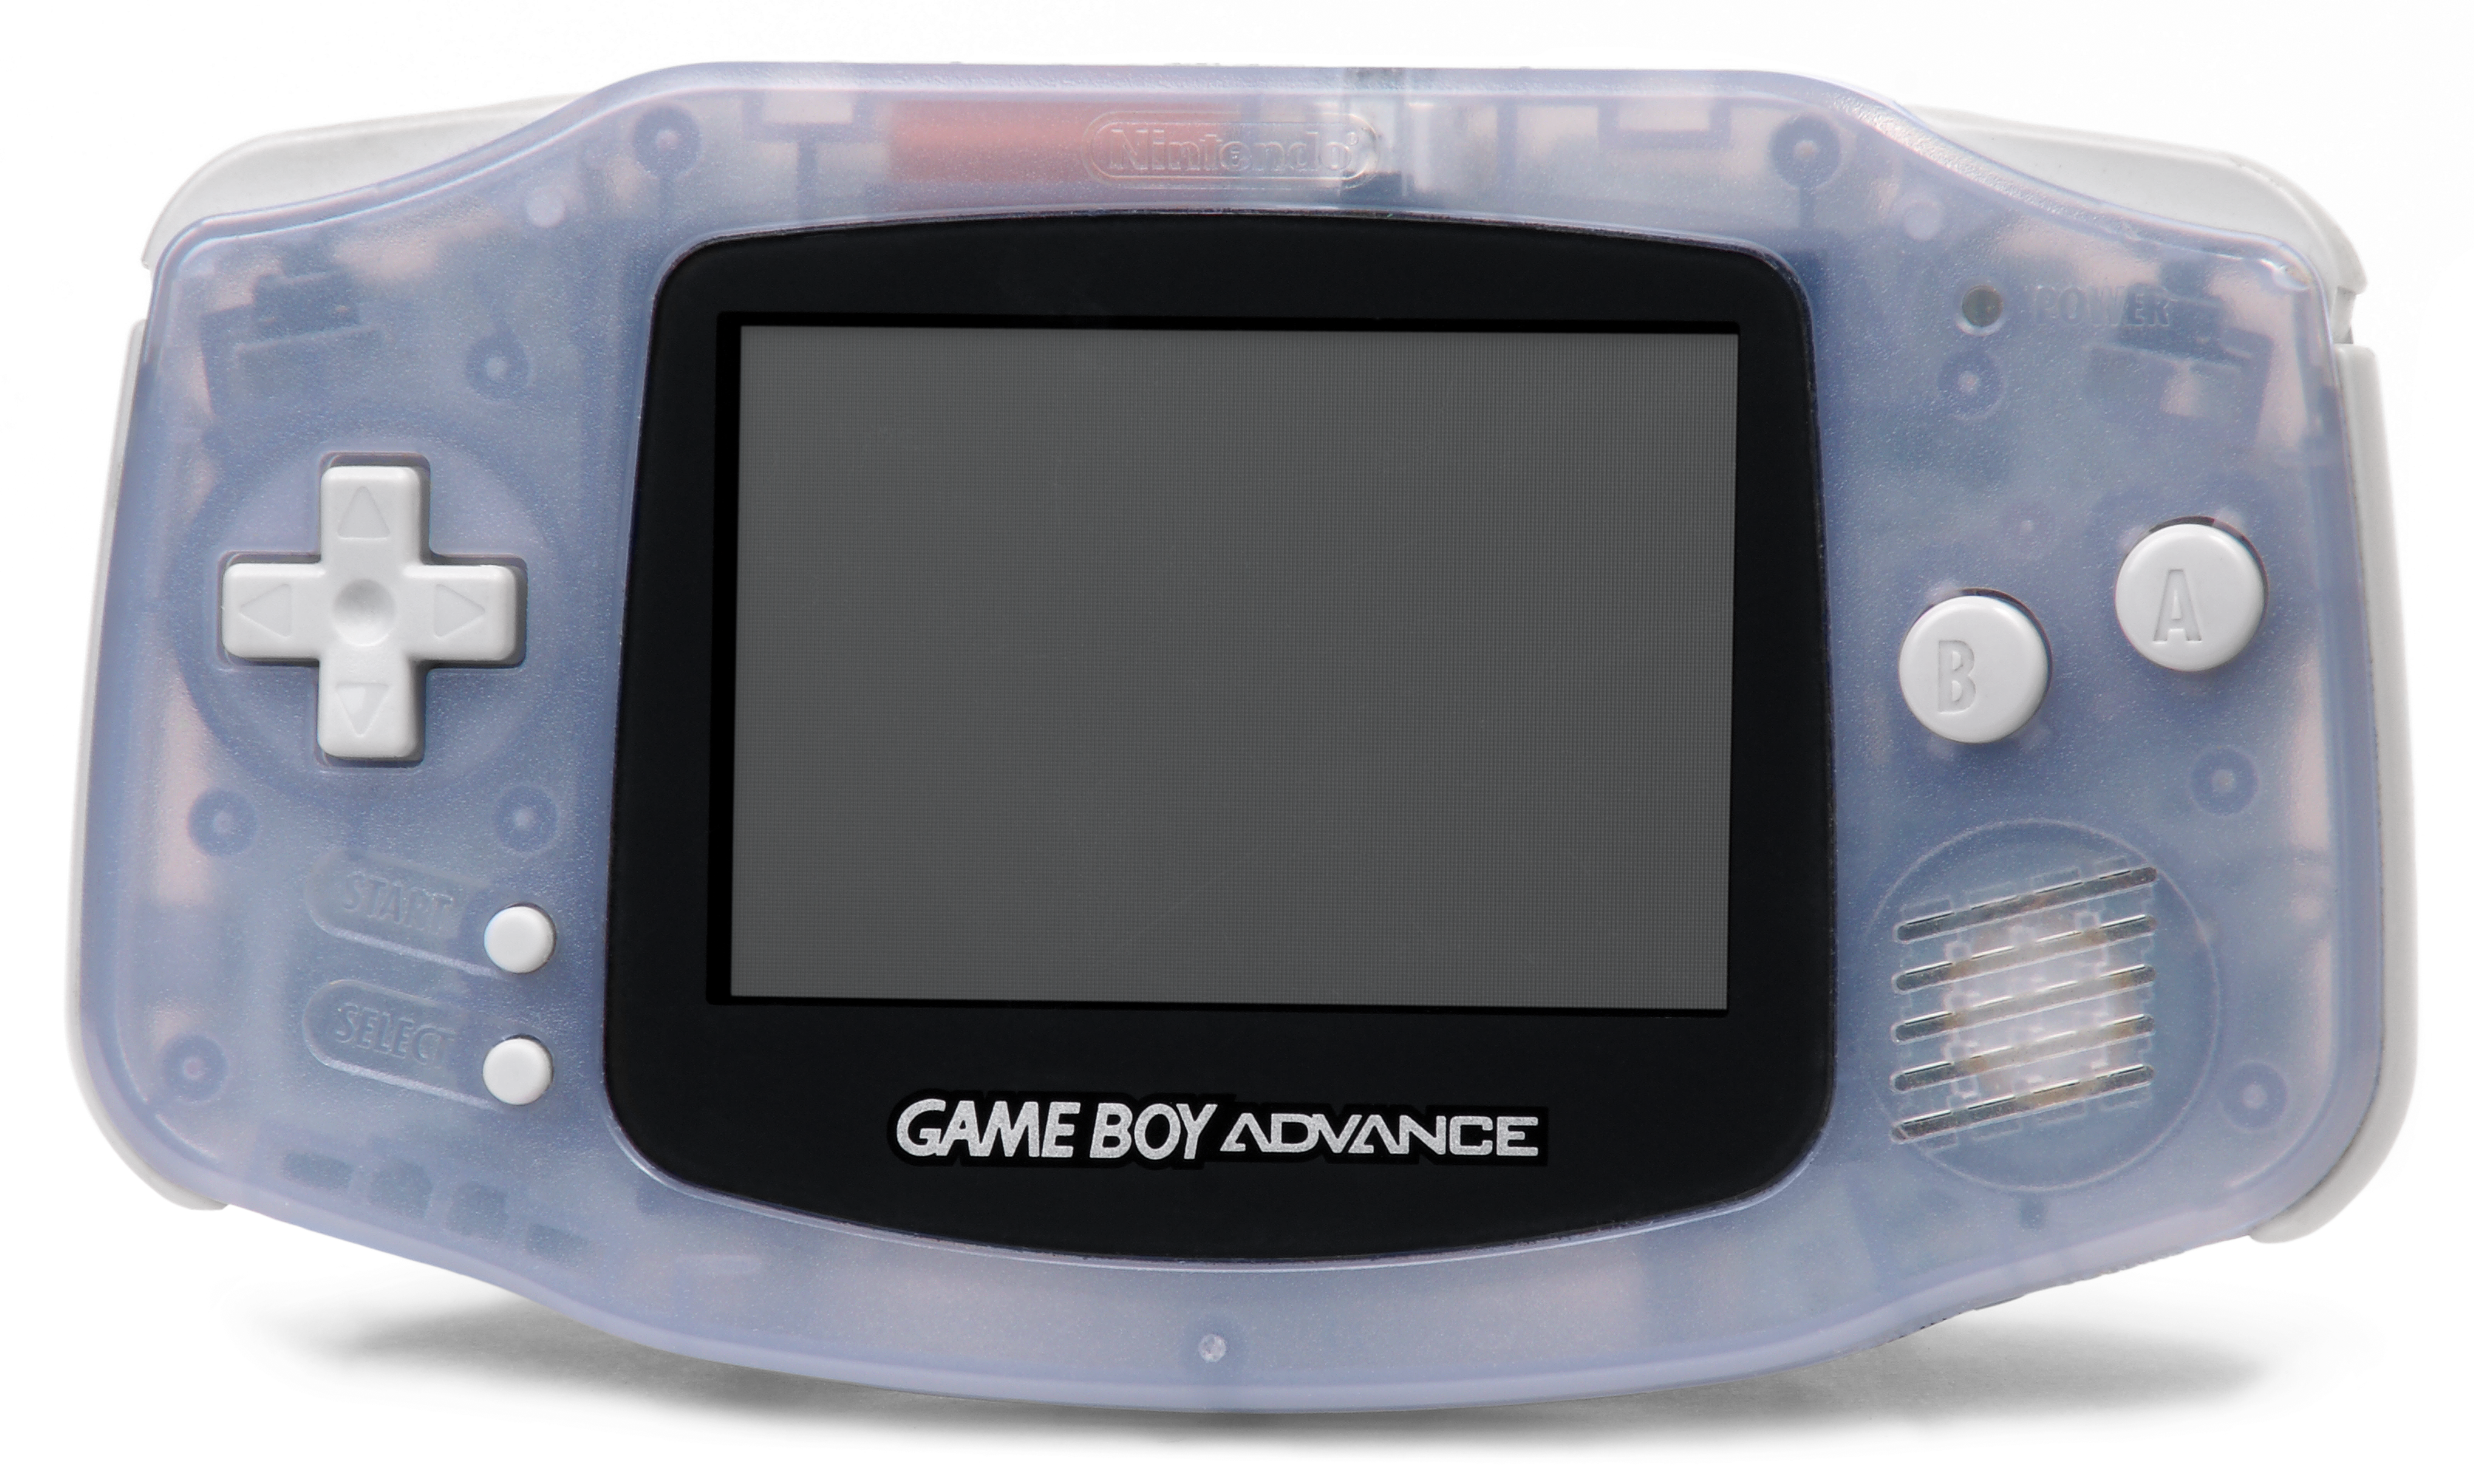 D transparent gameboy. Game boy advance emulator